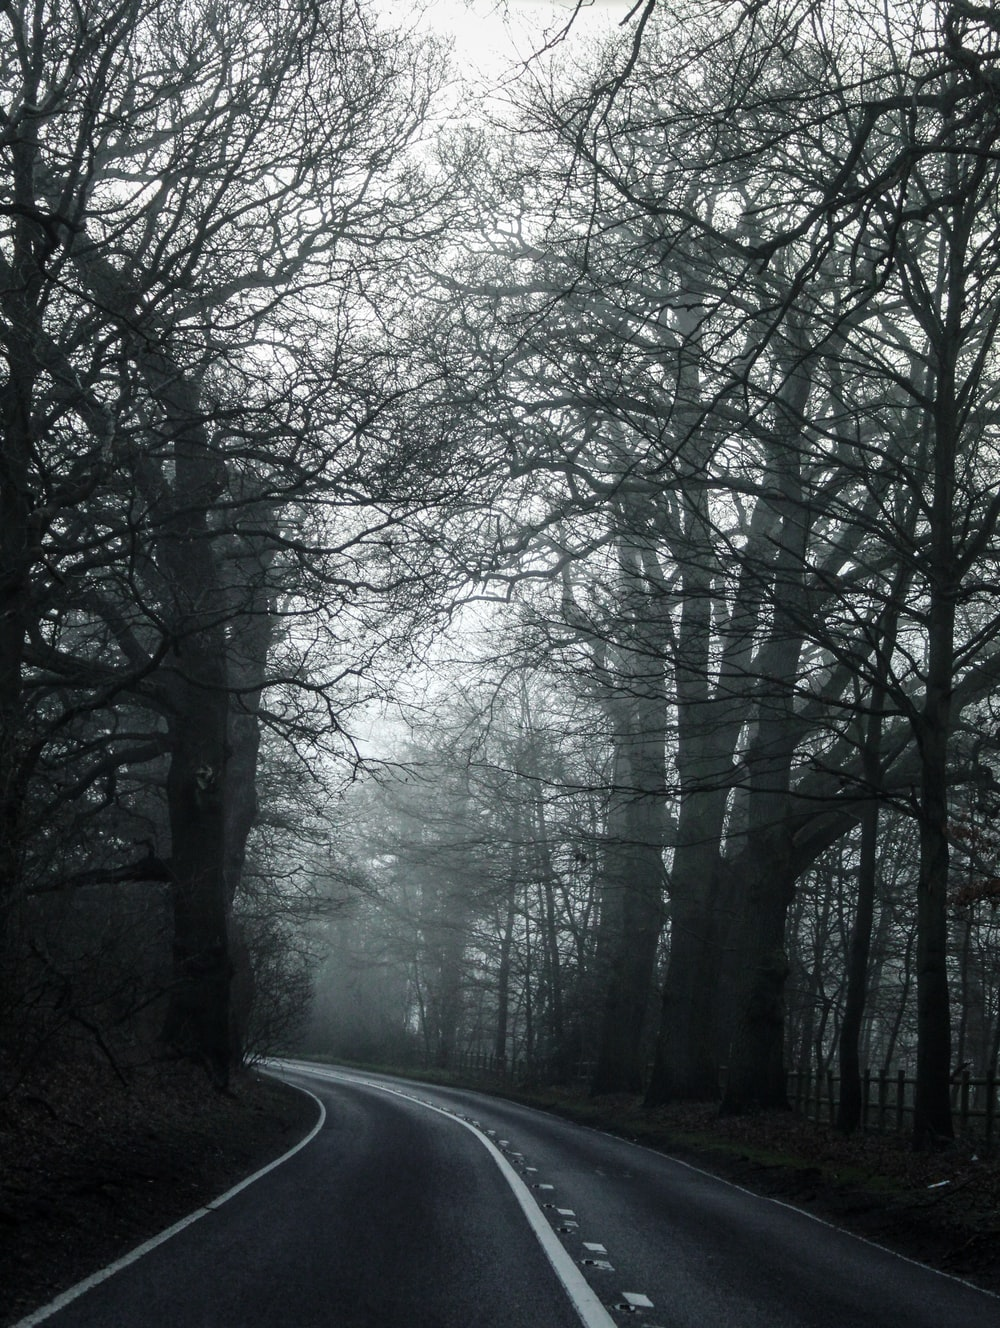 gray asphalt road between bare trees